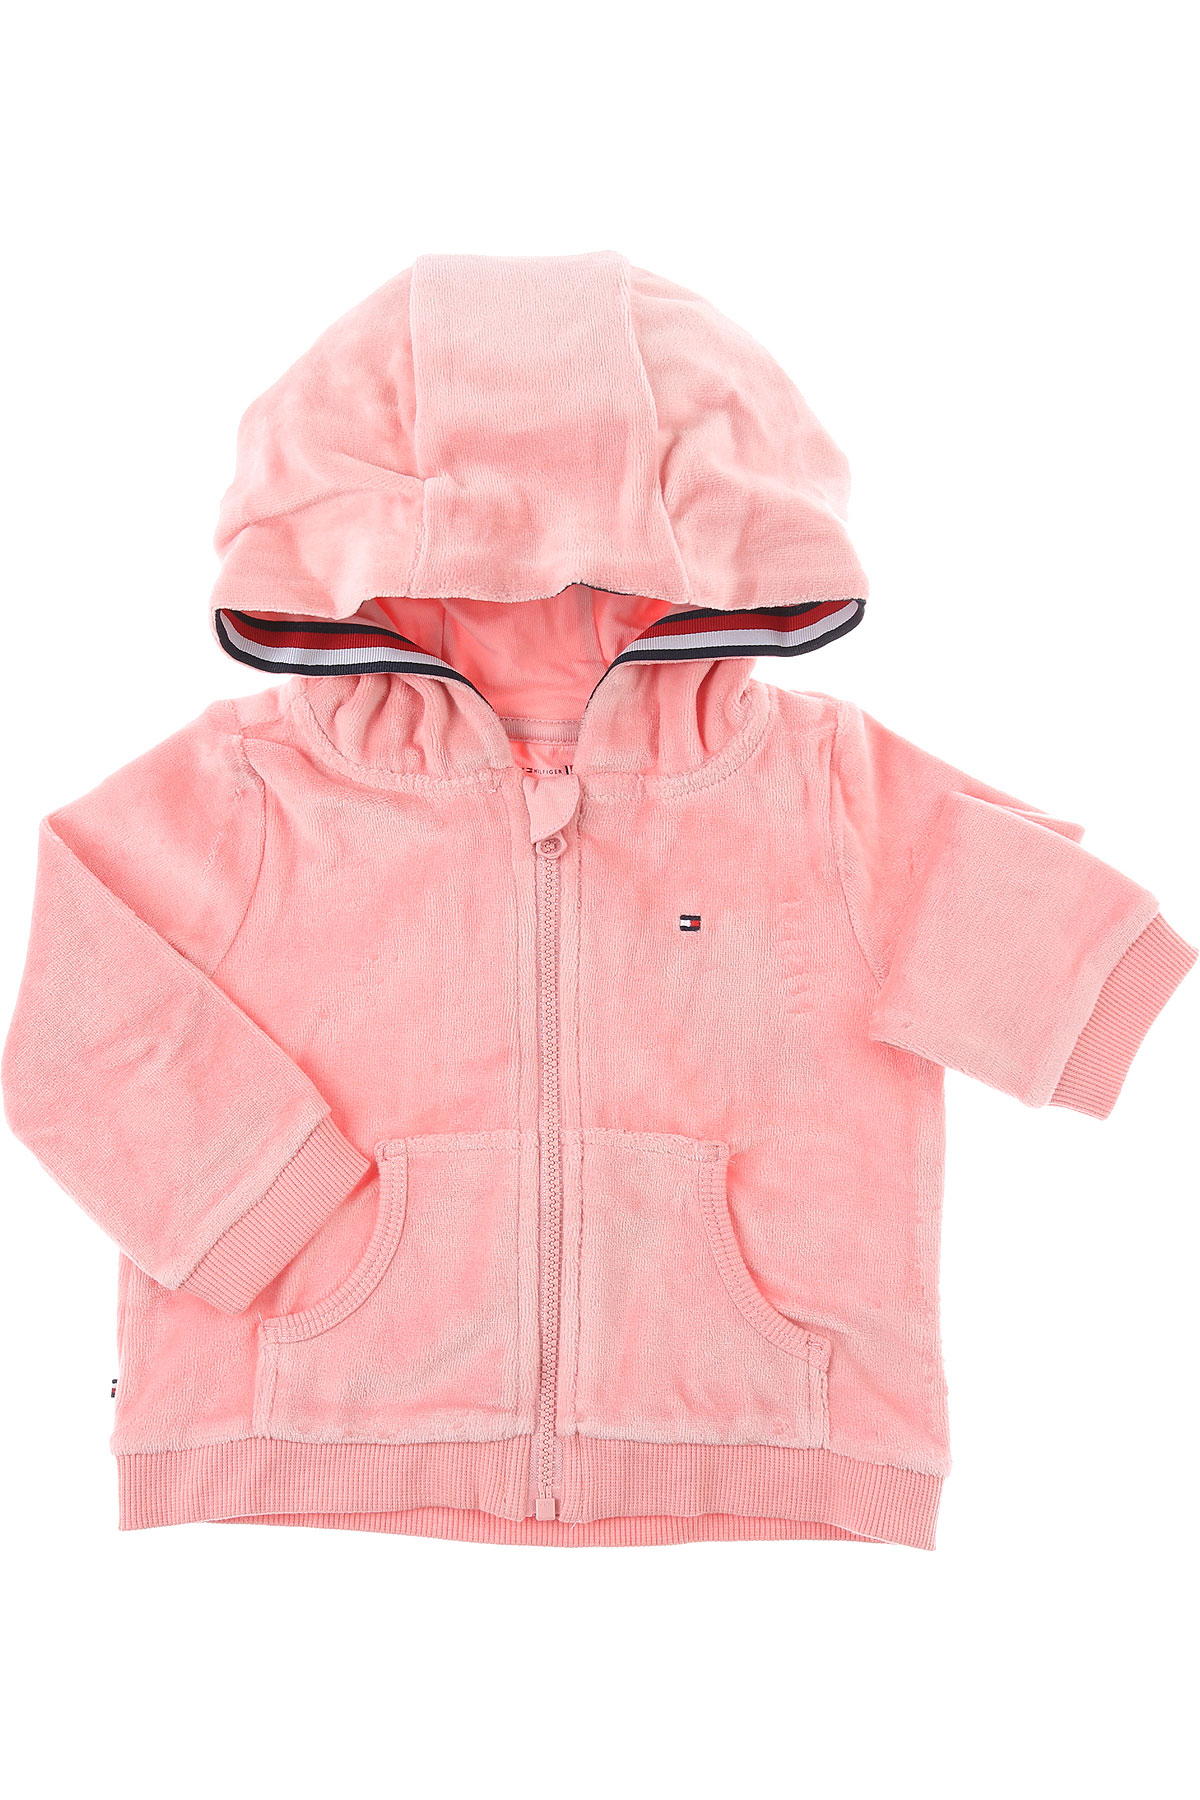 Tommy Hilfiger Baby Sweatshirts & Hoodies for Girls On Sale, Pink, Cotton, 2019, 18M 6M 9M